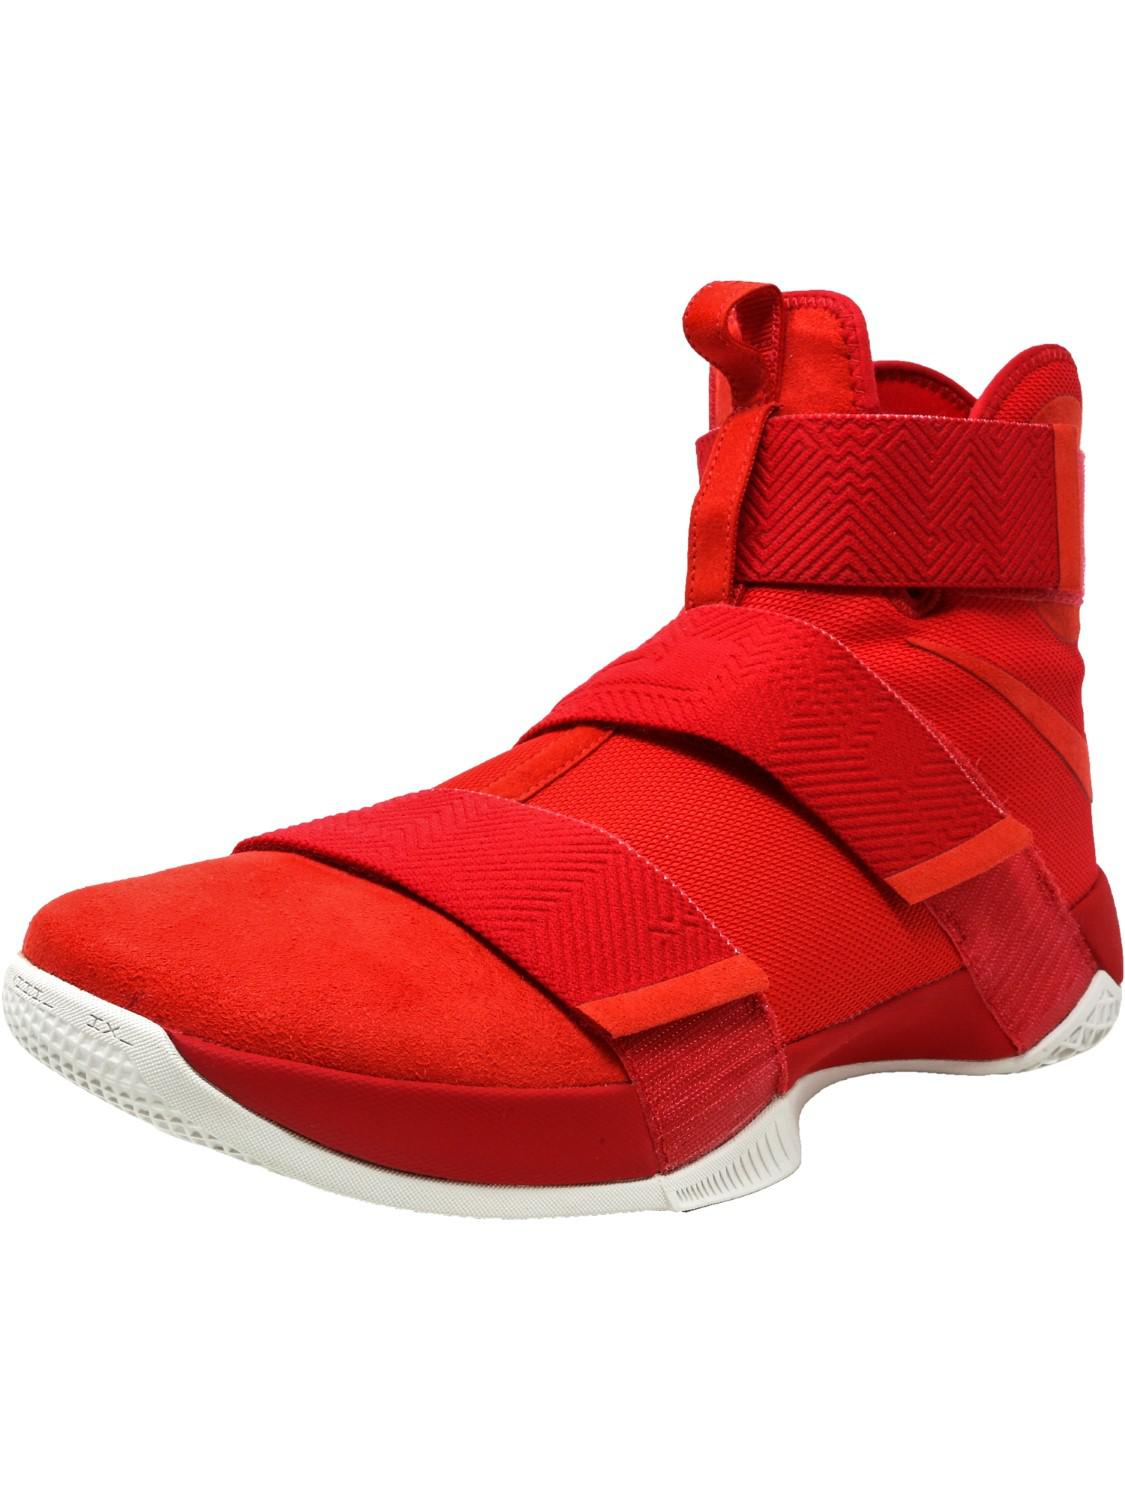 info for b8e91 fcc7f Nike Lebron Soldier 10 Sfg Lux University Red   High-top Basketball ...